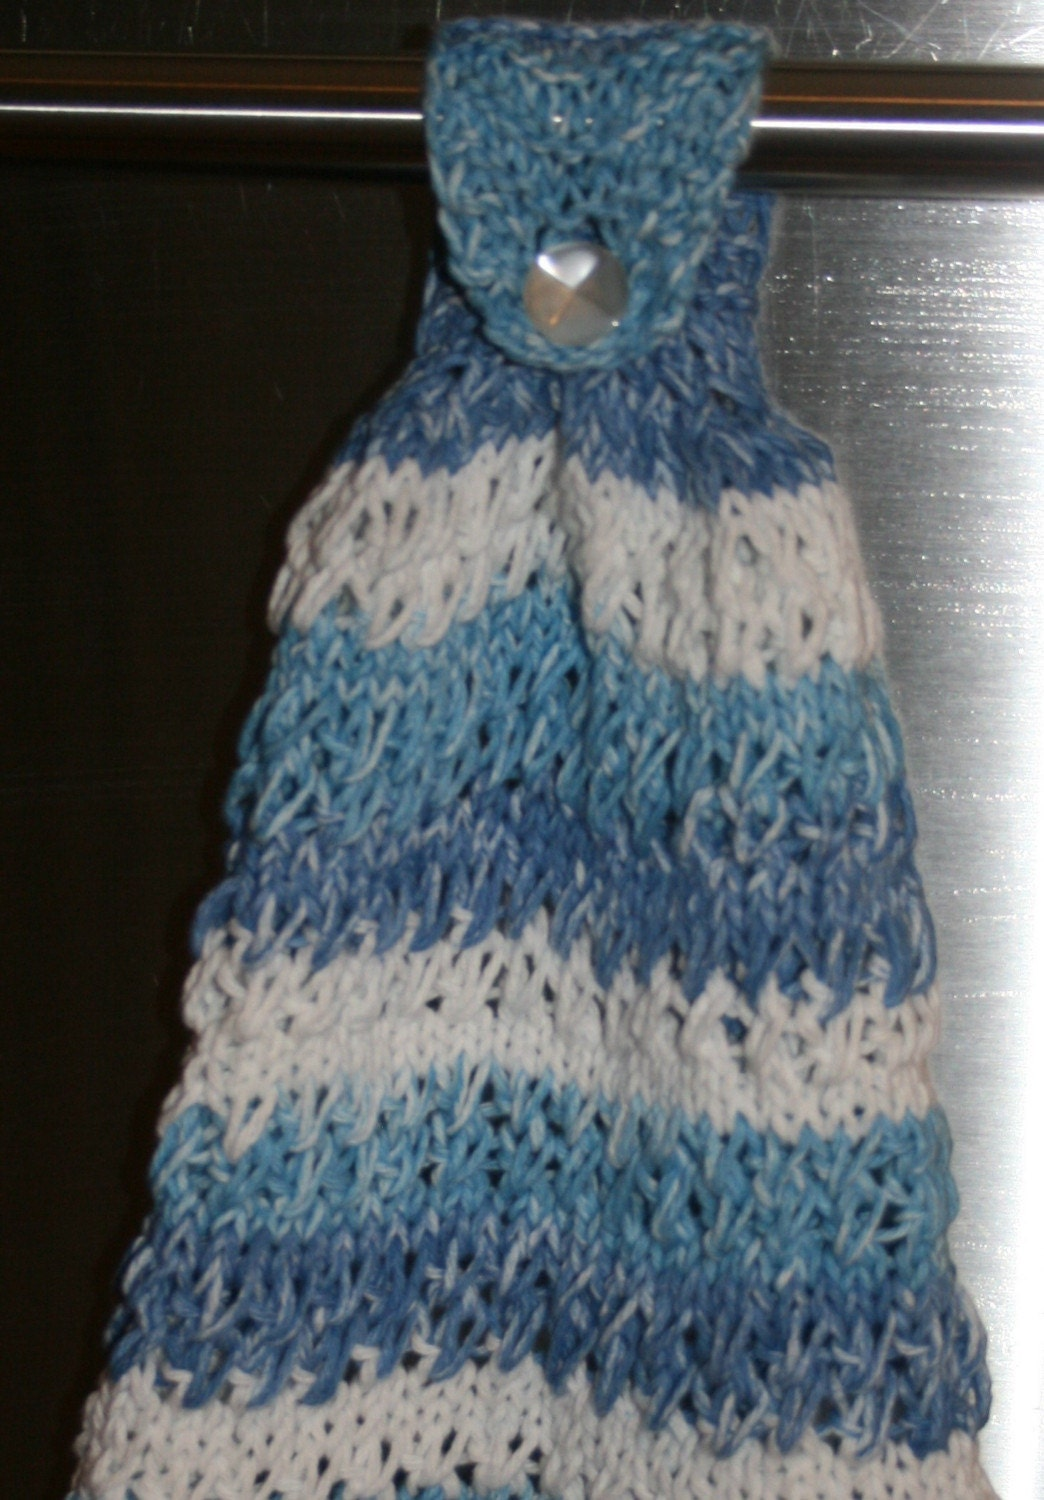 Knitted Dish Towel Pattern | Patterns Gallery